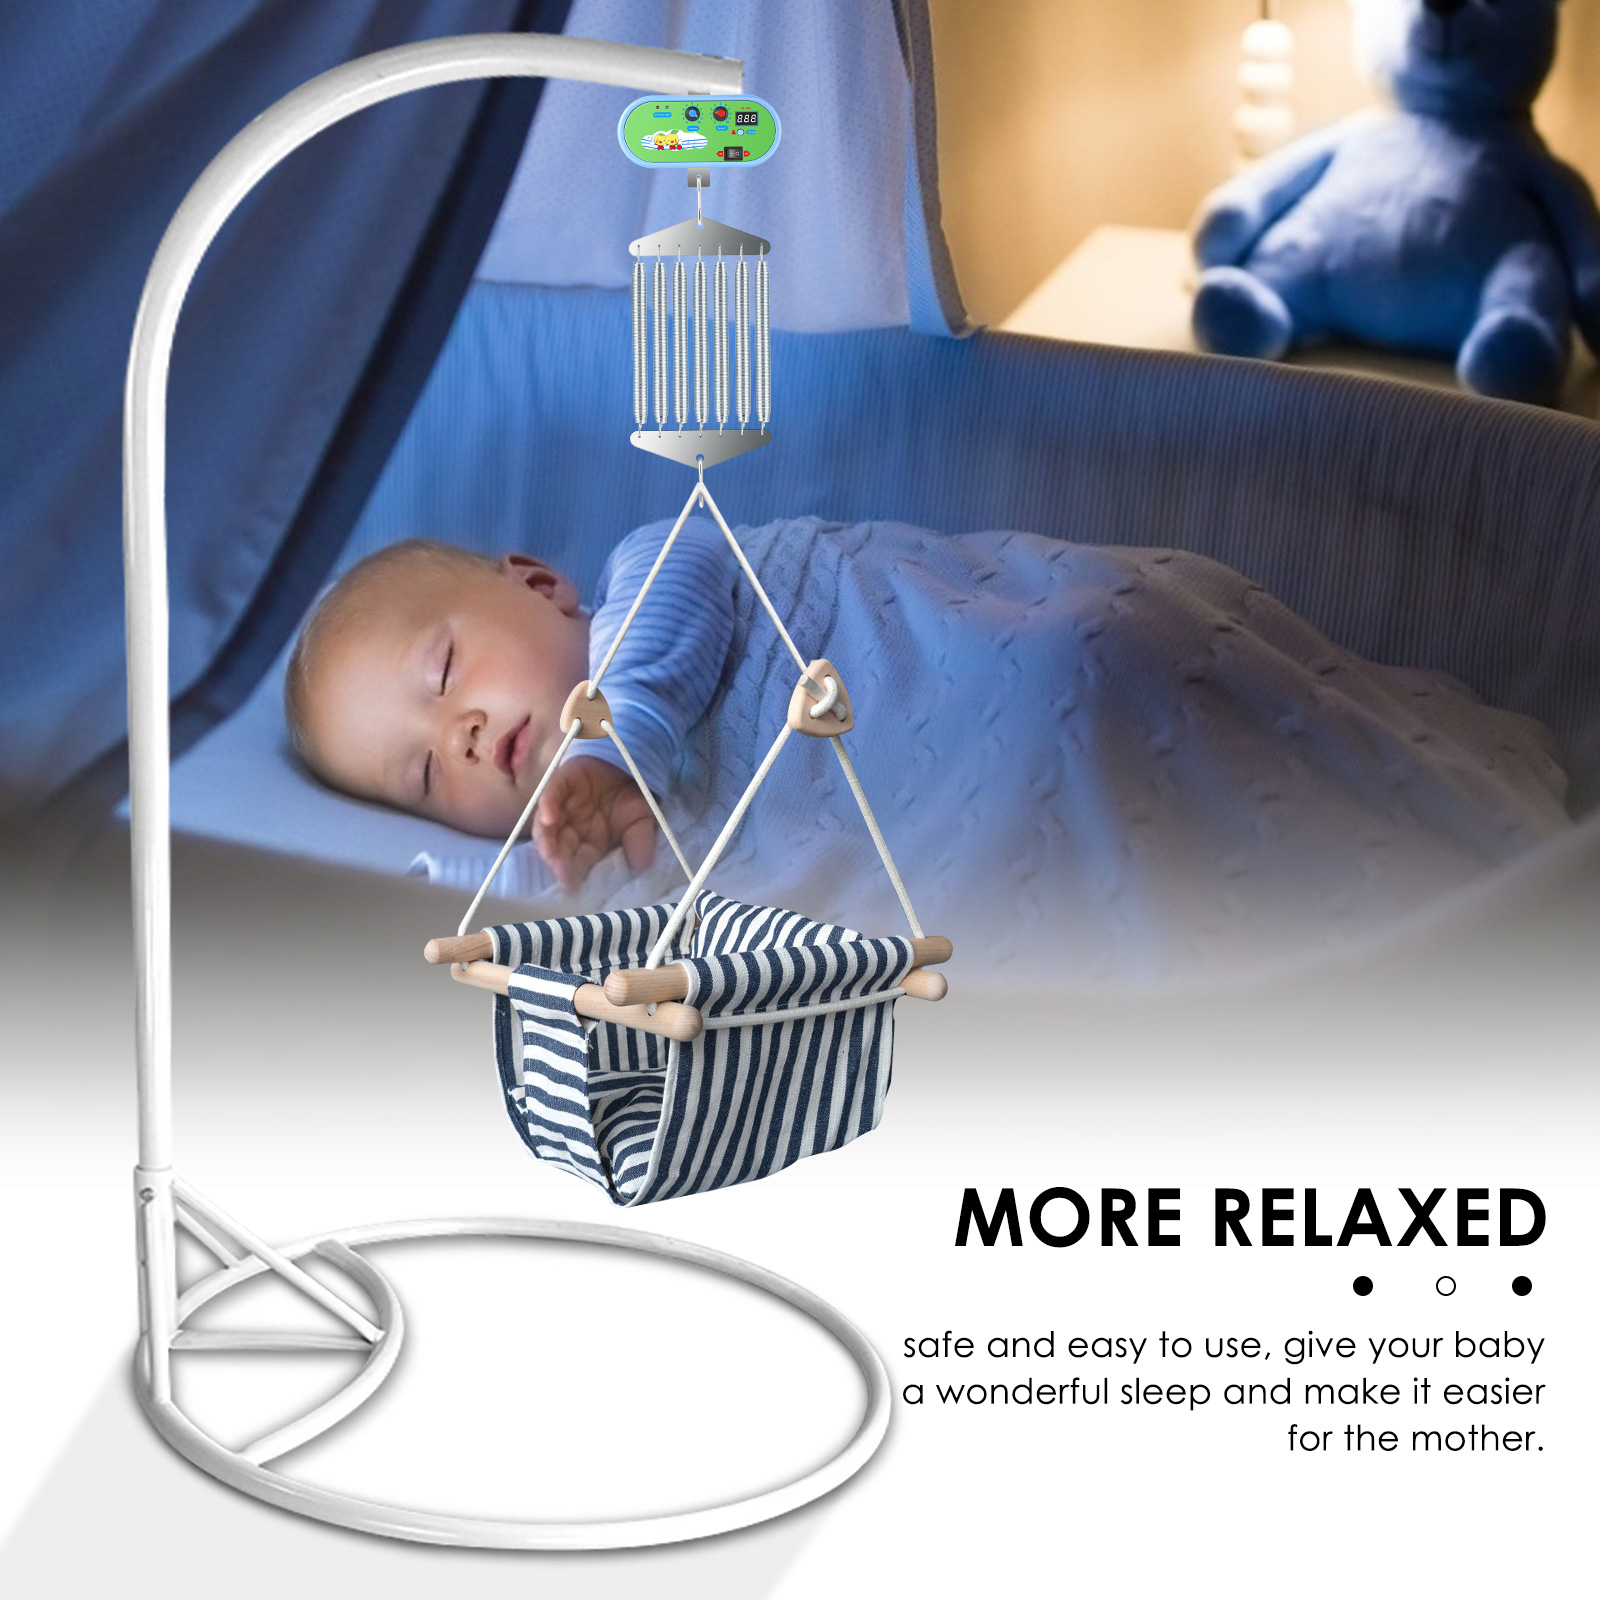 100-260V Input Electric Cradle Baby Rocker Controller Cradle Driver Adjustable Timer Baby Swing Auto Rock Play Vibrating Sleeper